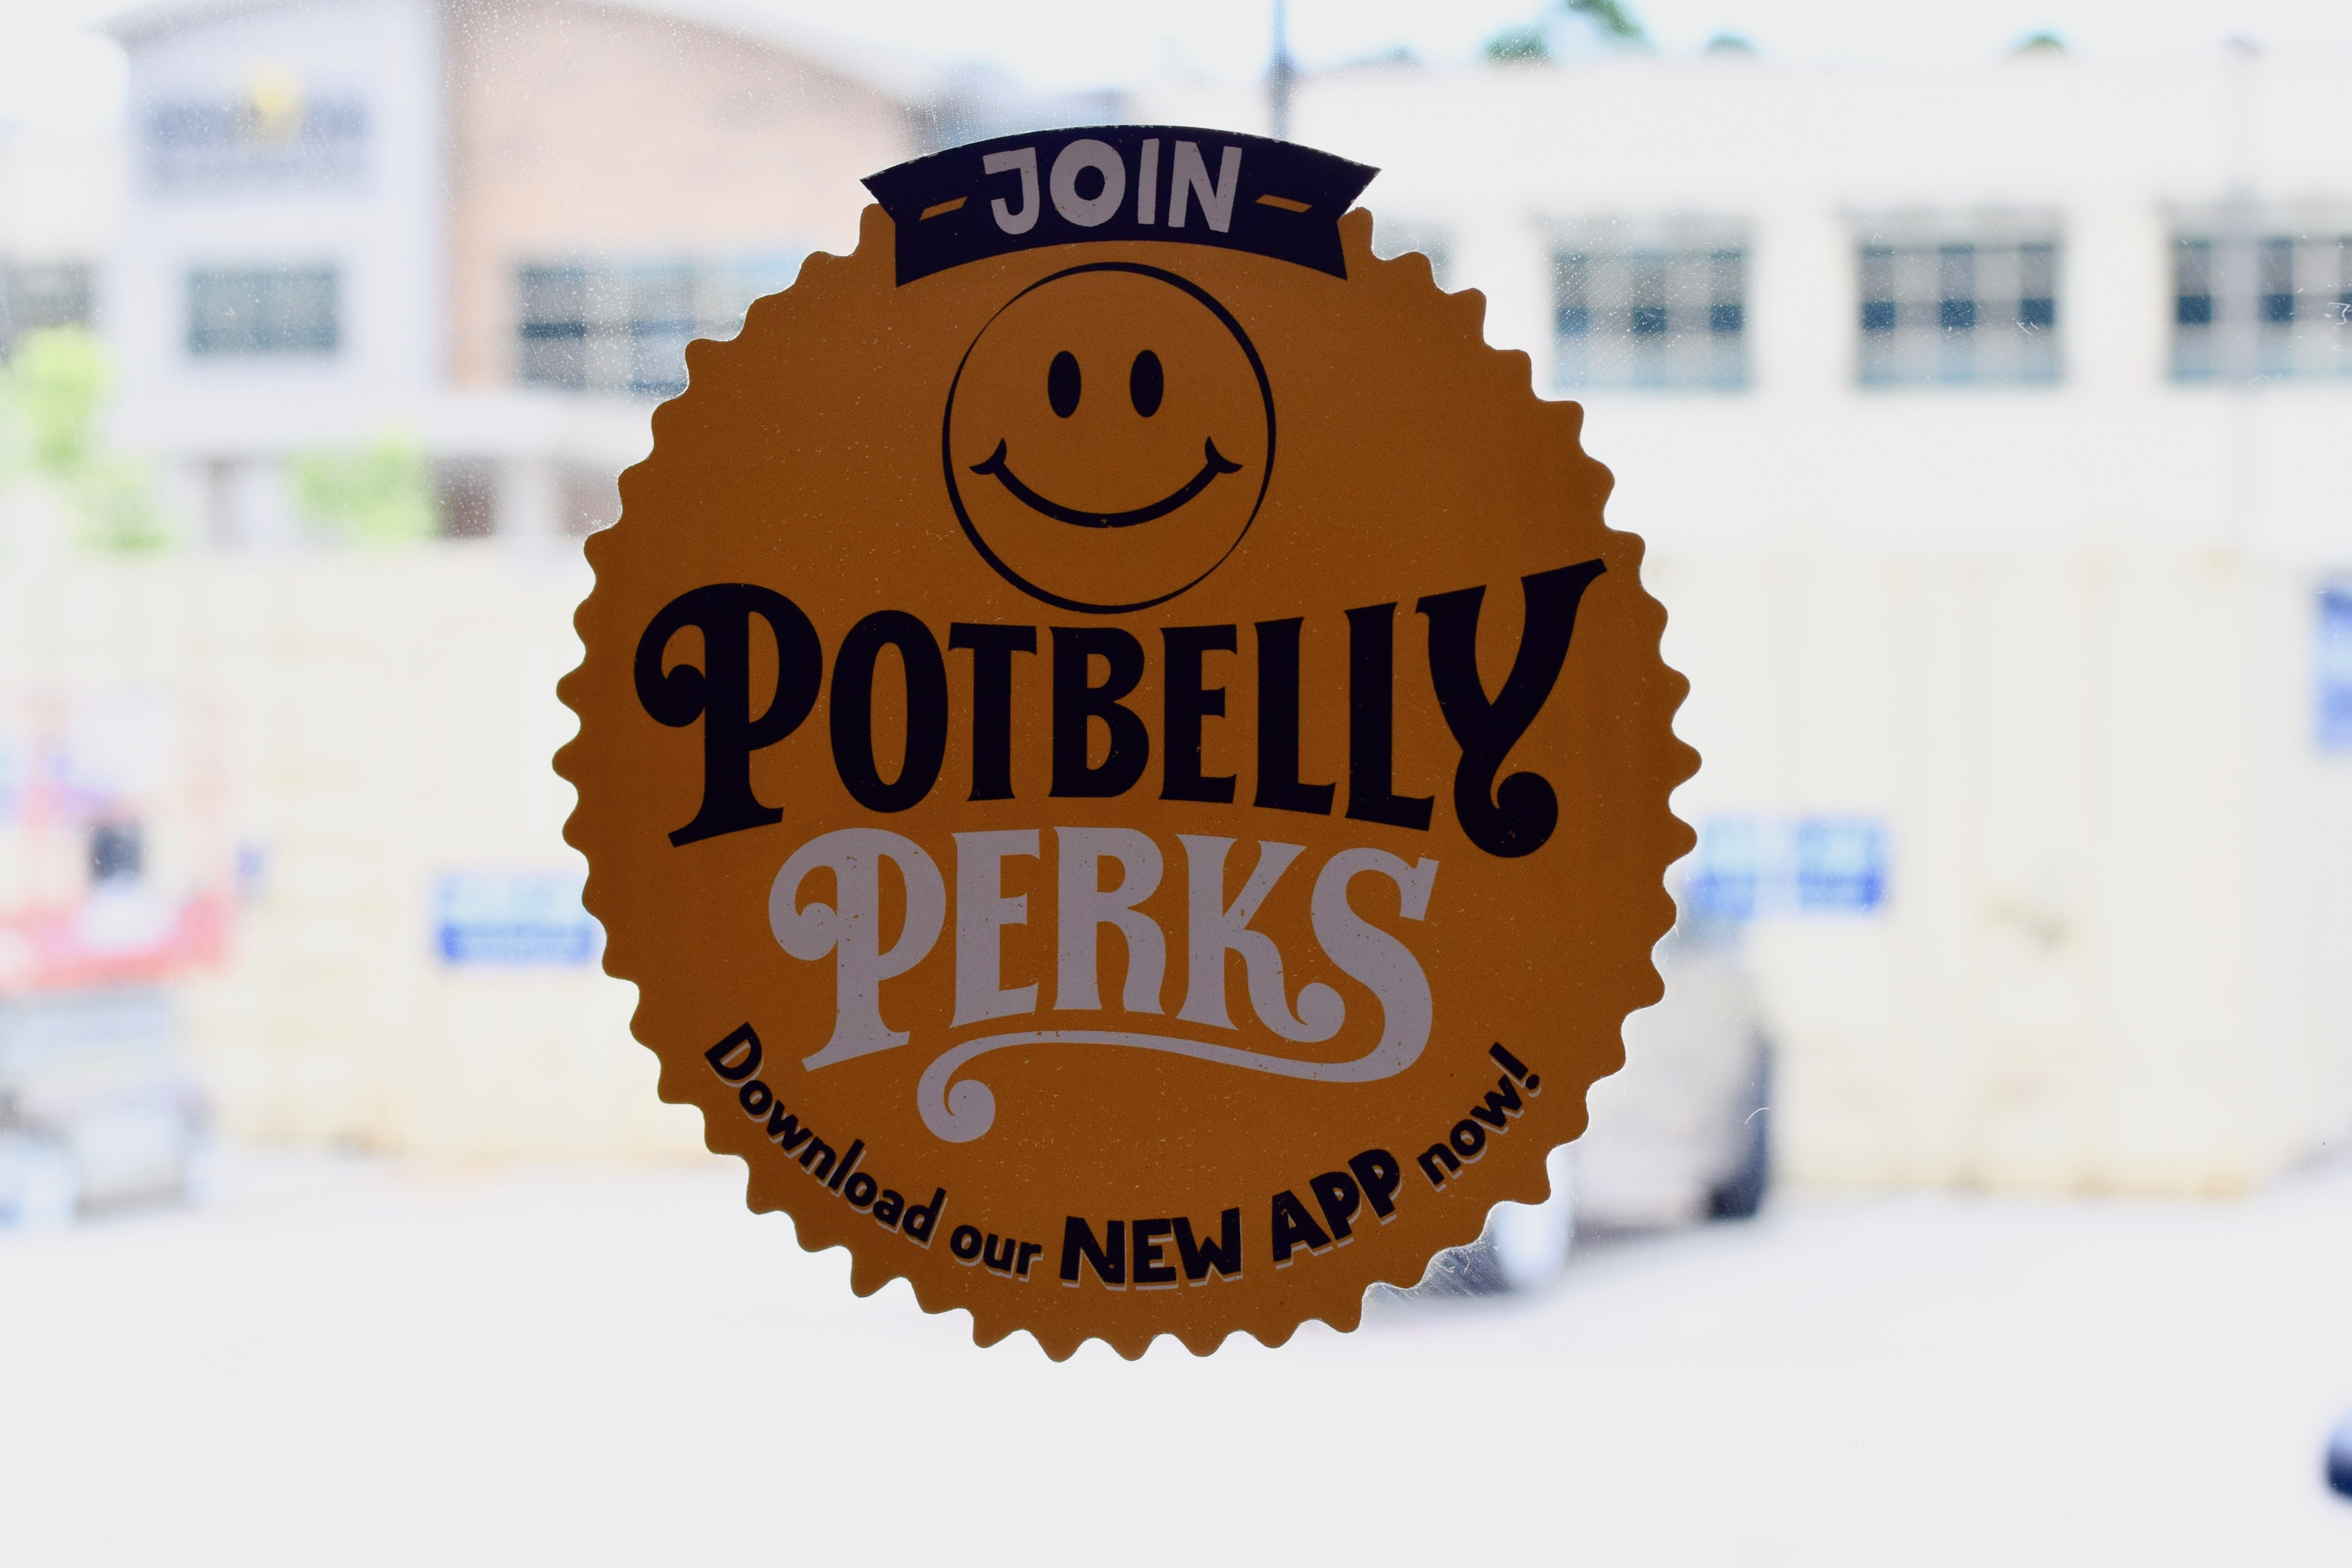 Potbelly Logo Potbelly Opens In Kingwood Discussion On The Kingwood Forums